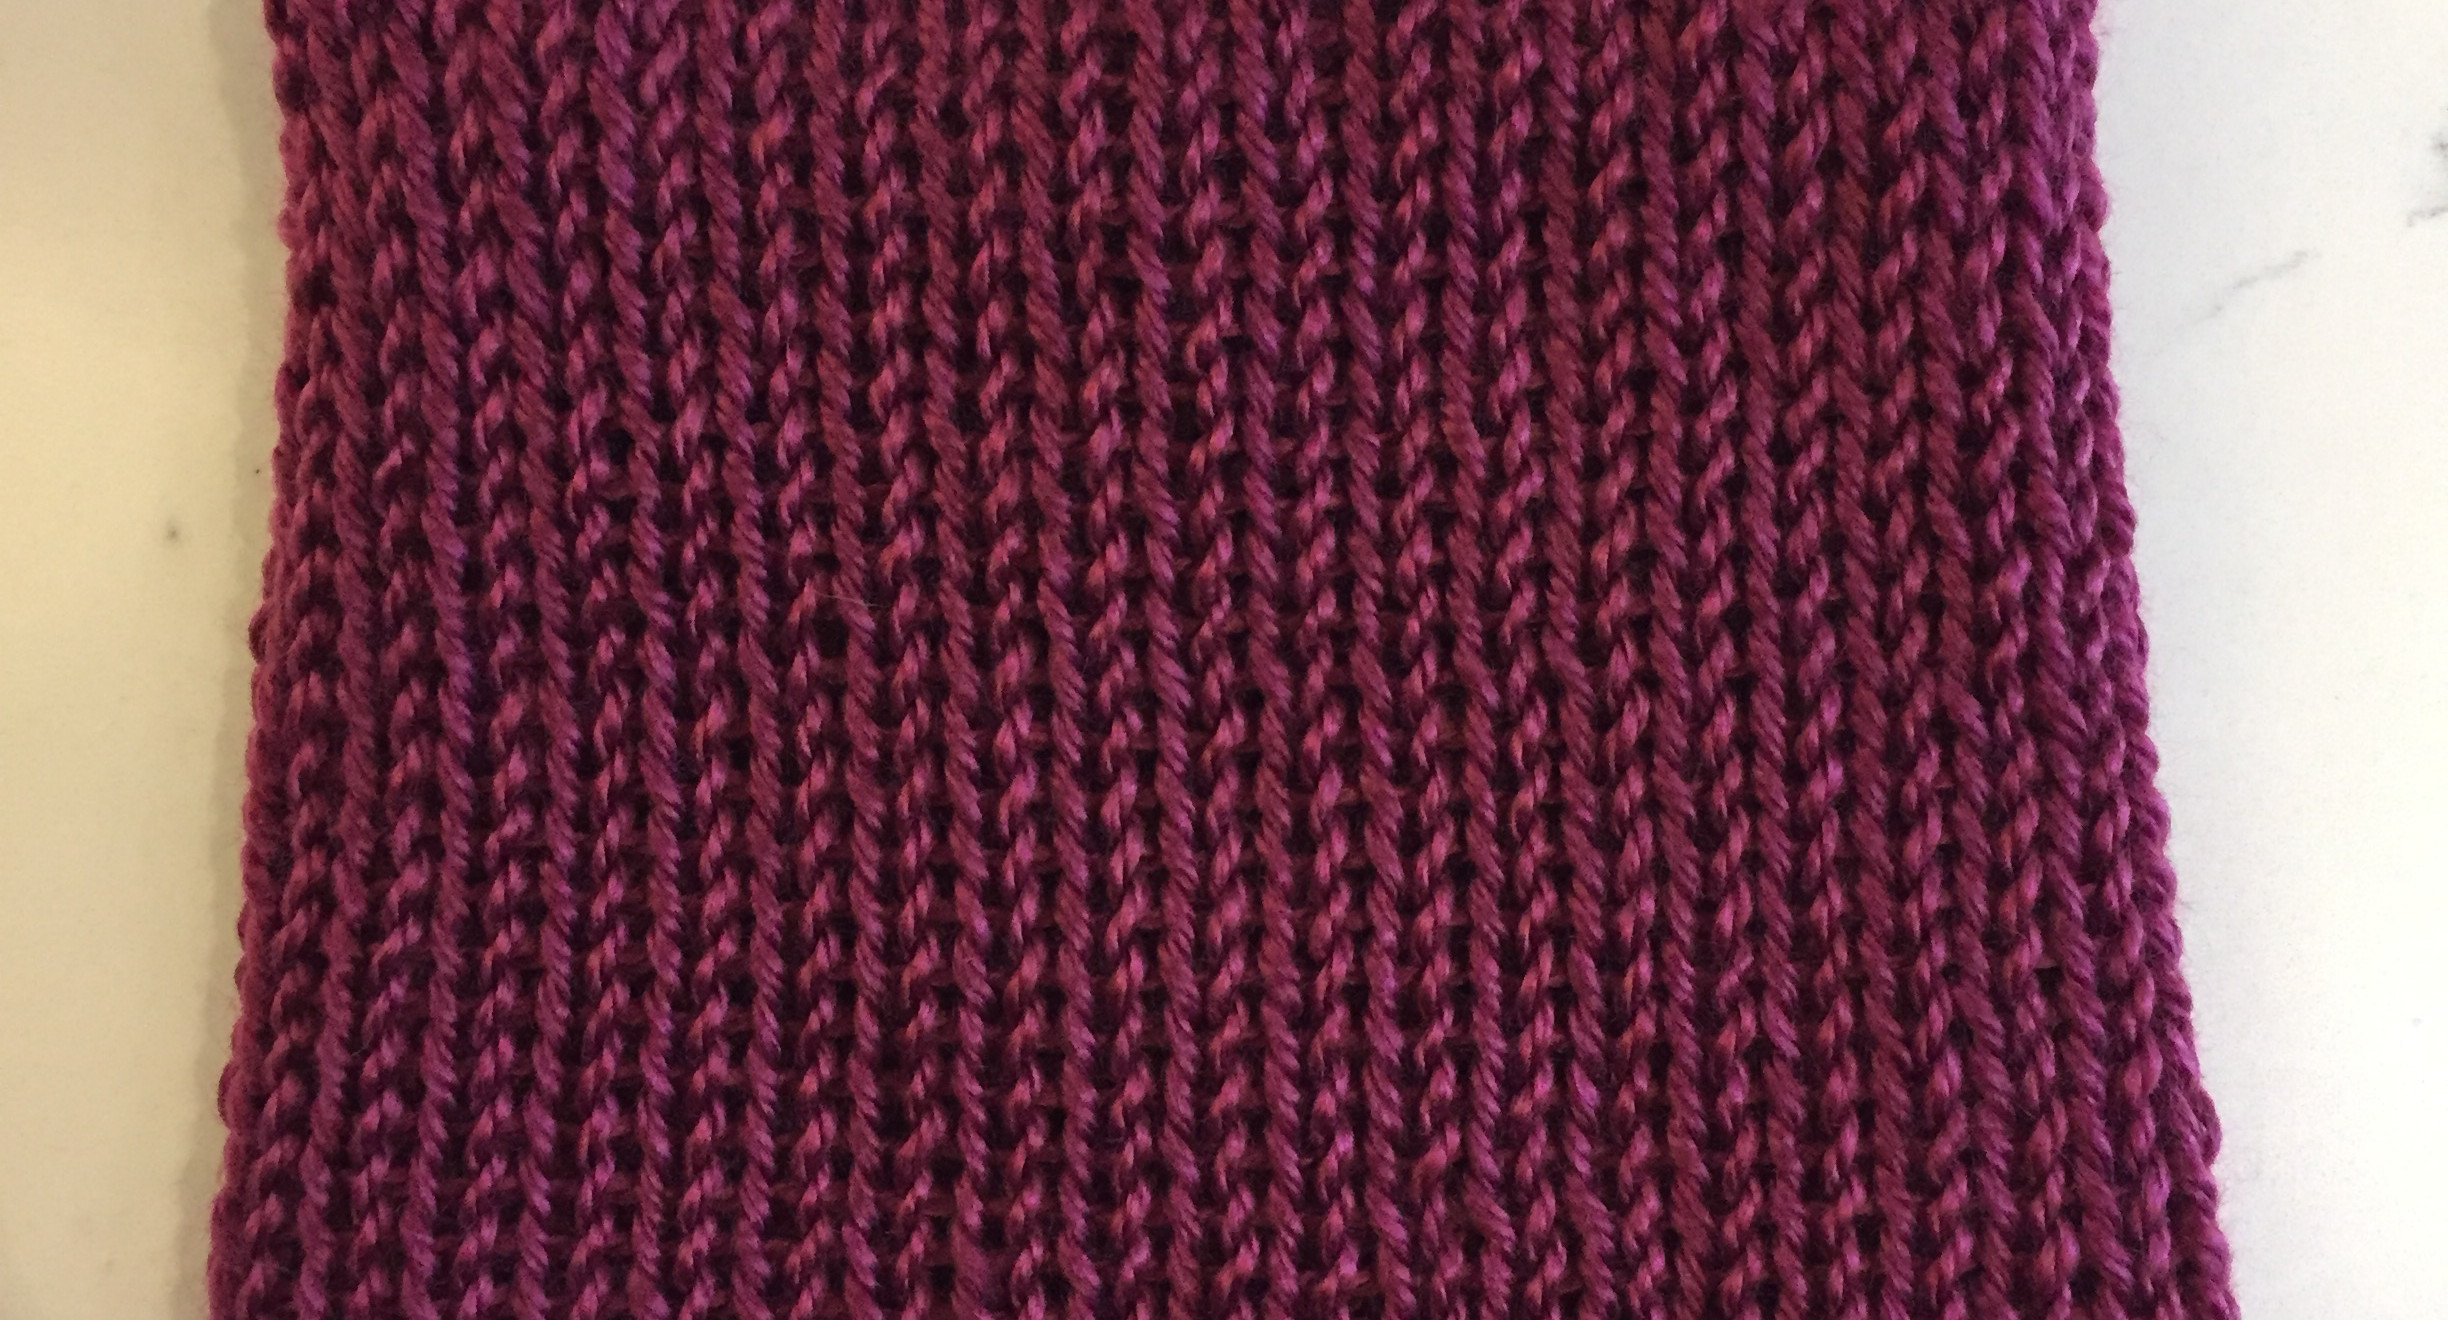 Burgundy kids knit hat with straight seam across the top